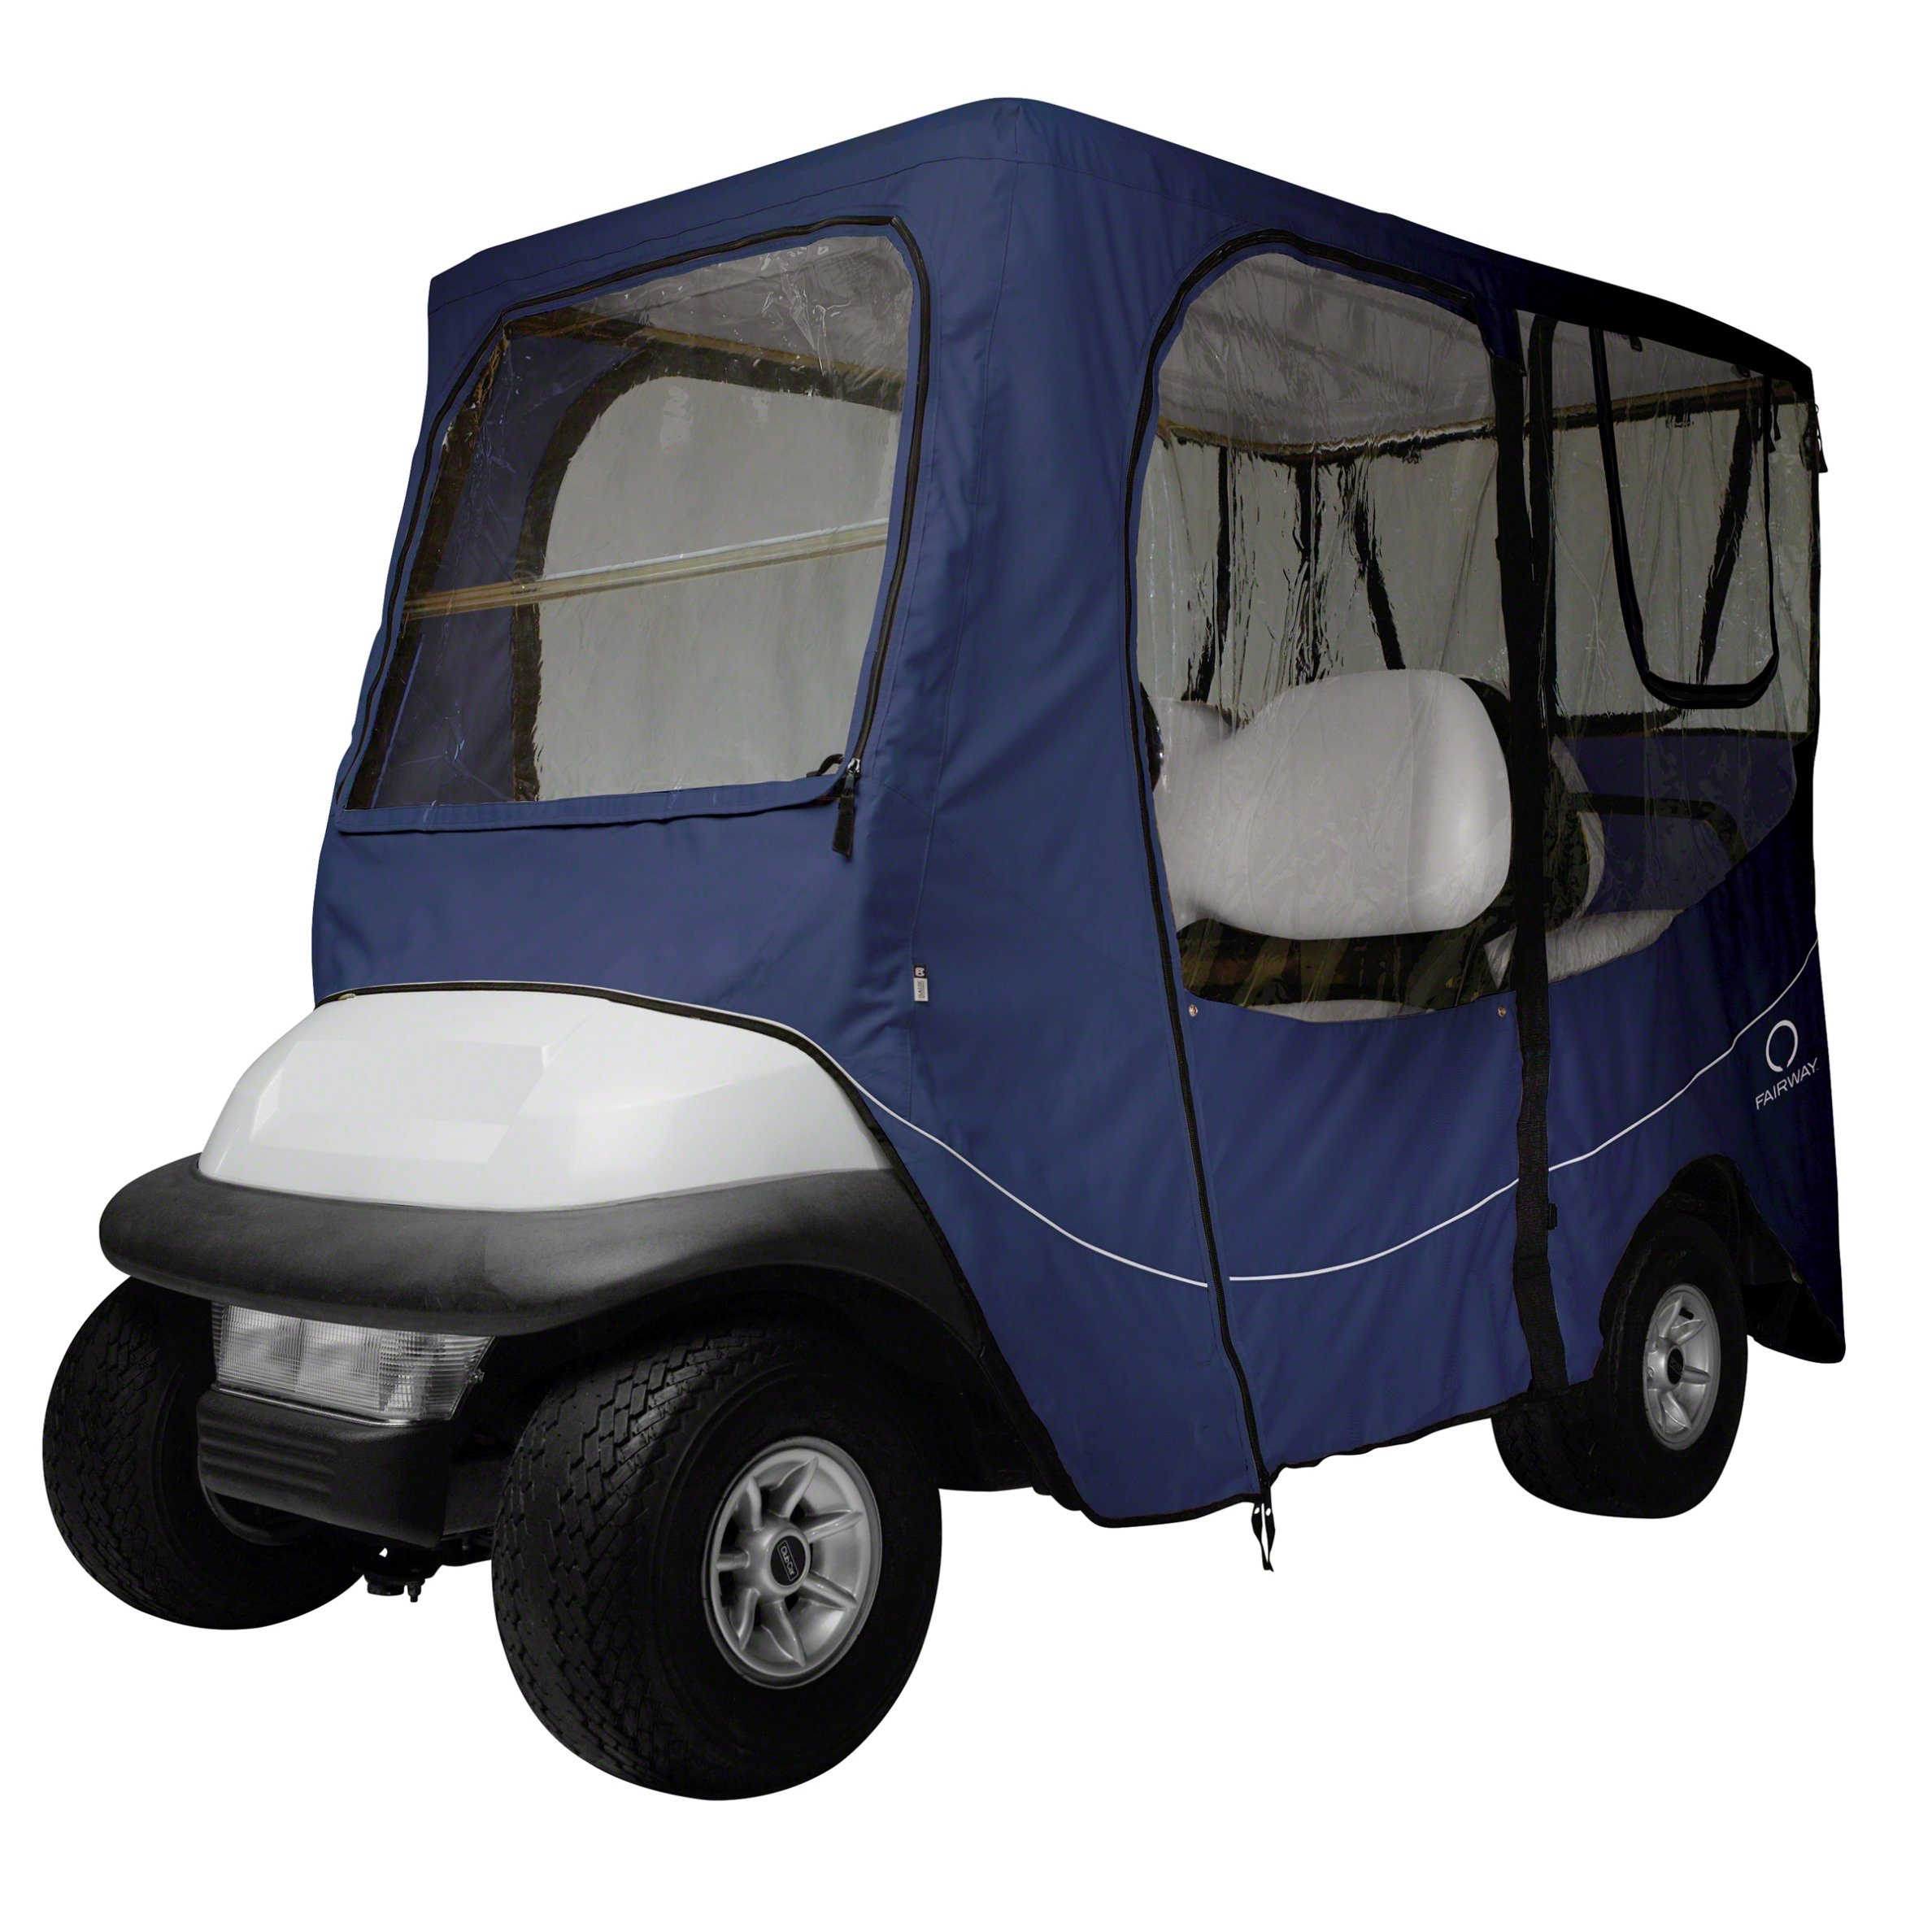 Classic Accessories Fairway Golf Cart Deluxe Enclosure, Navy, Long Roof